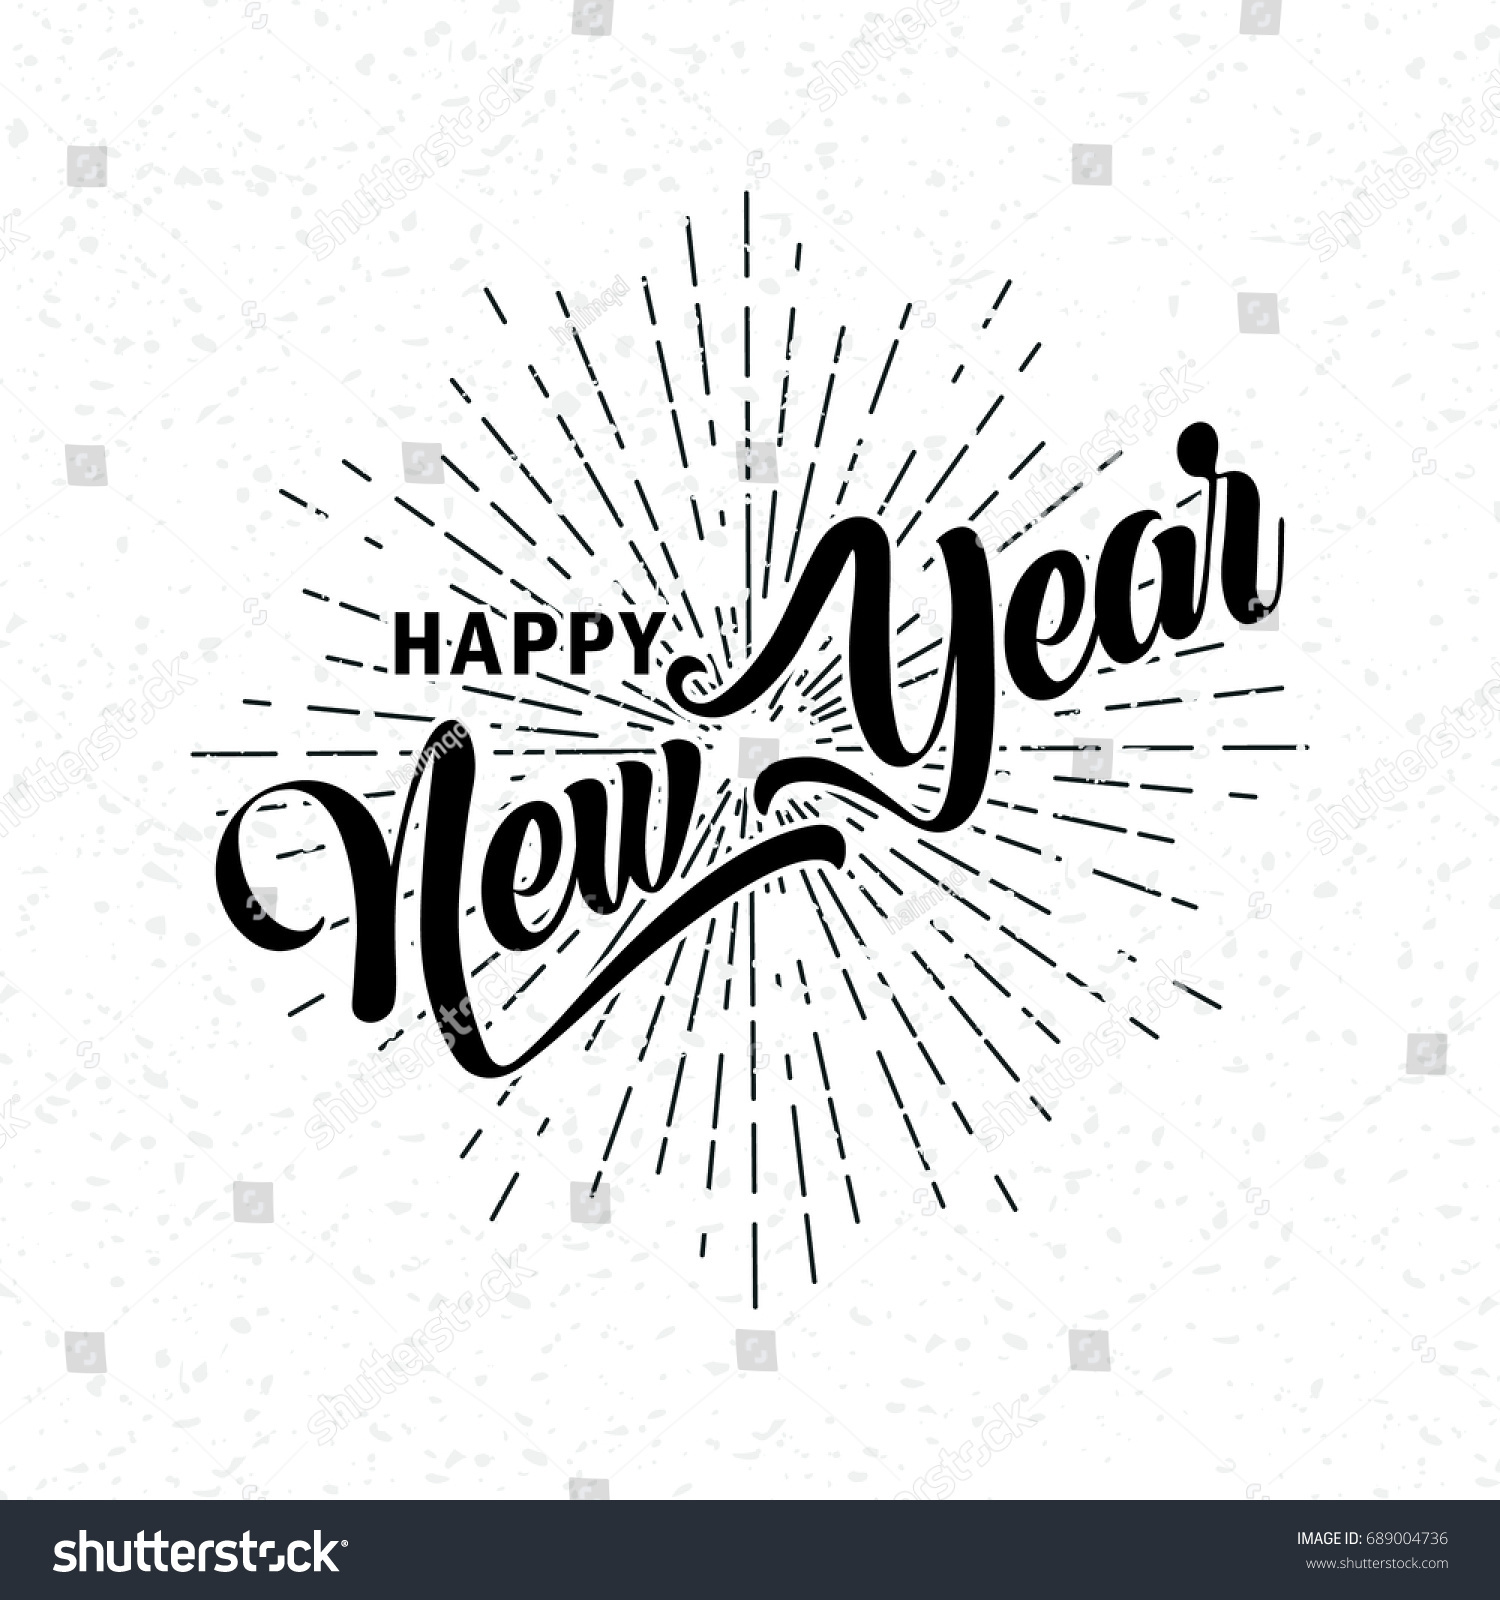 hand drawn happy new year font stock vector royalty free 689004736 https www shutterstock com image vector hand drawn happy new year font 689004736